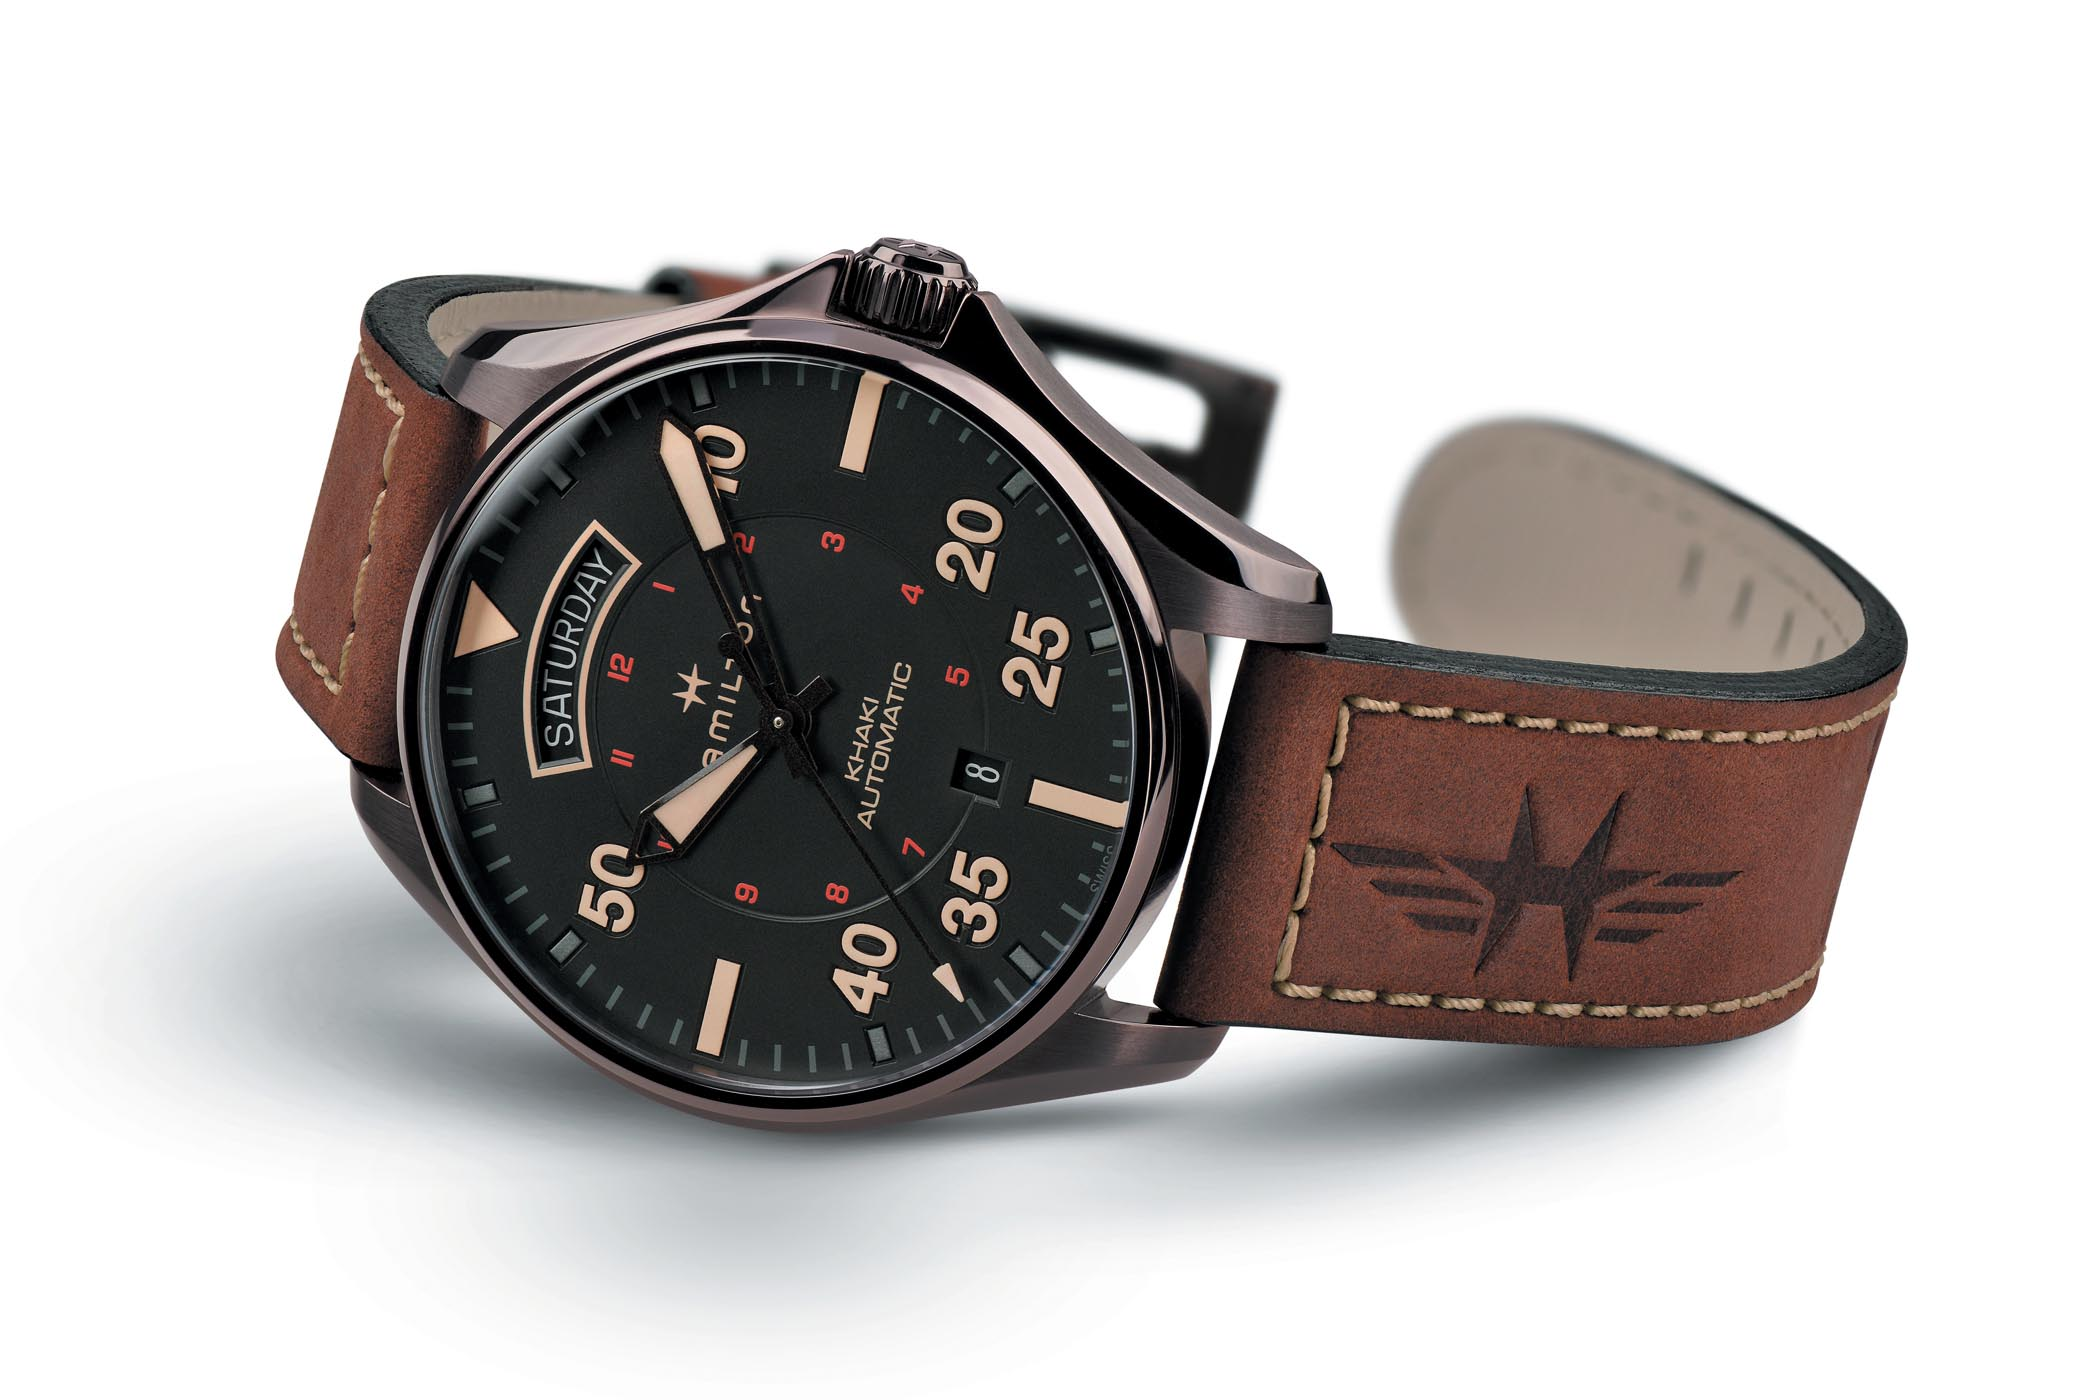 Hamilton Khaki Pilot Auto Day Date Collection - 3